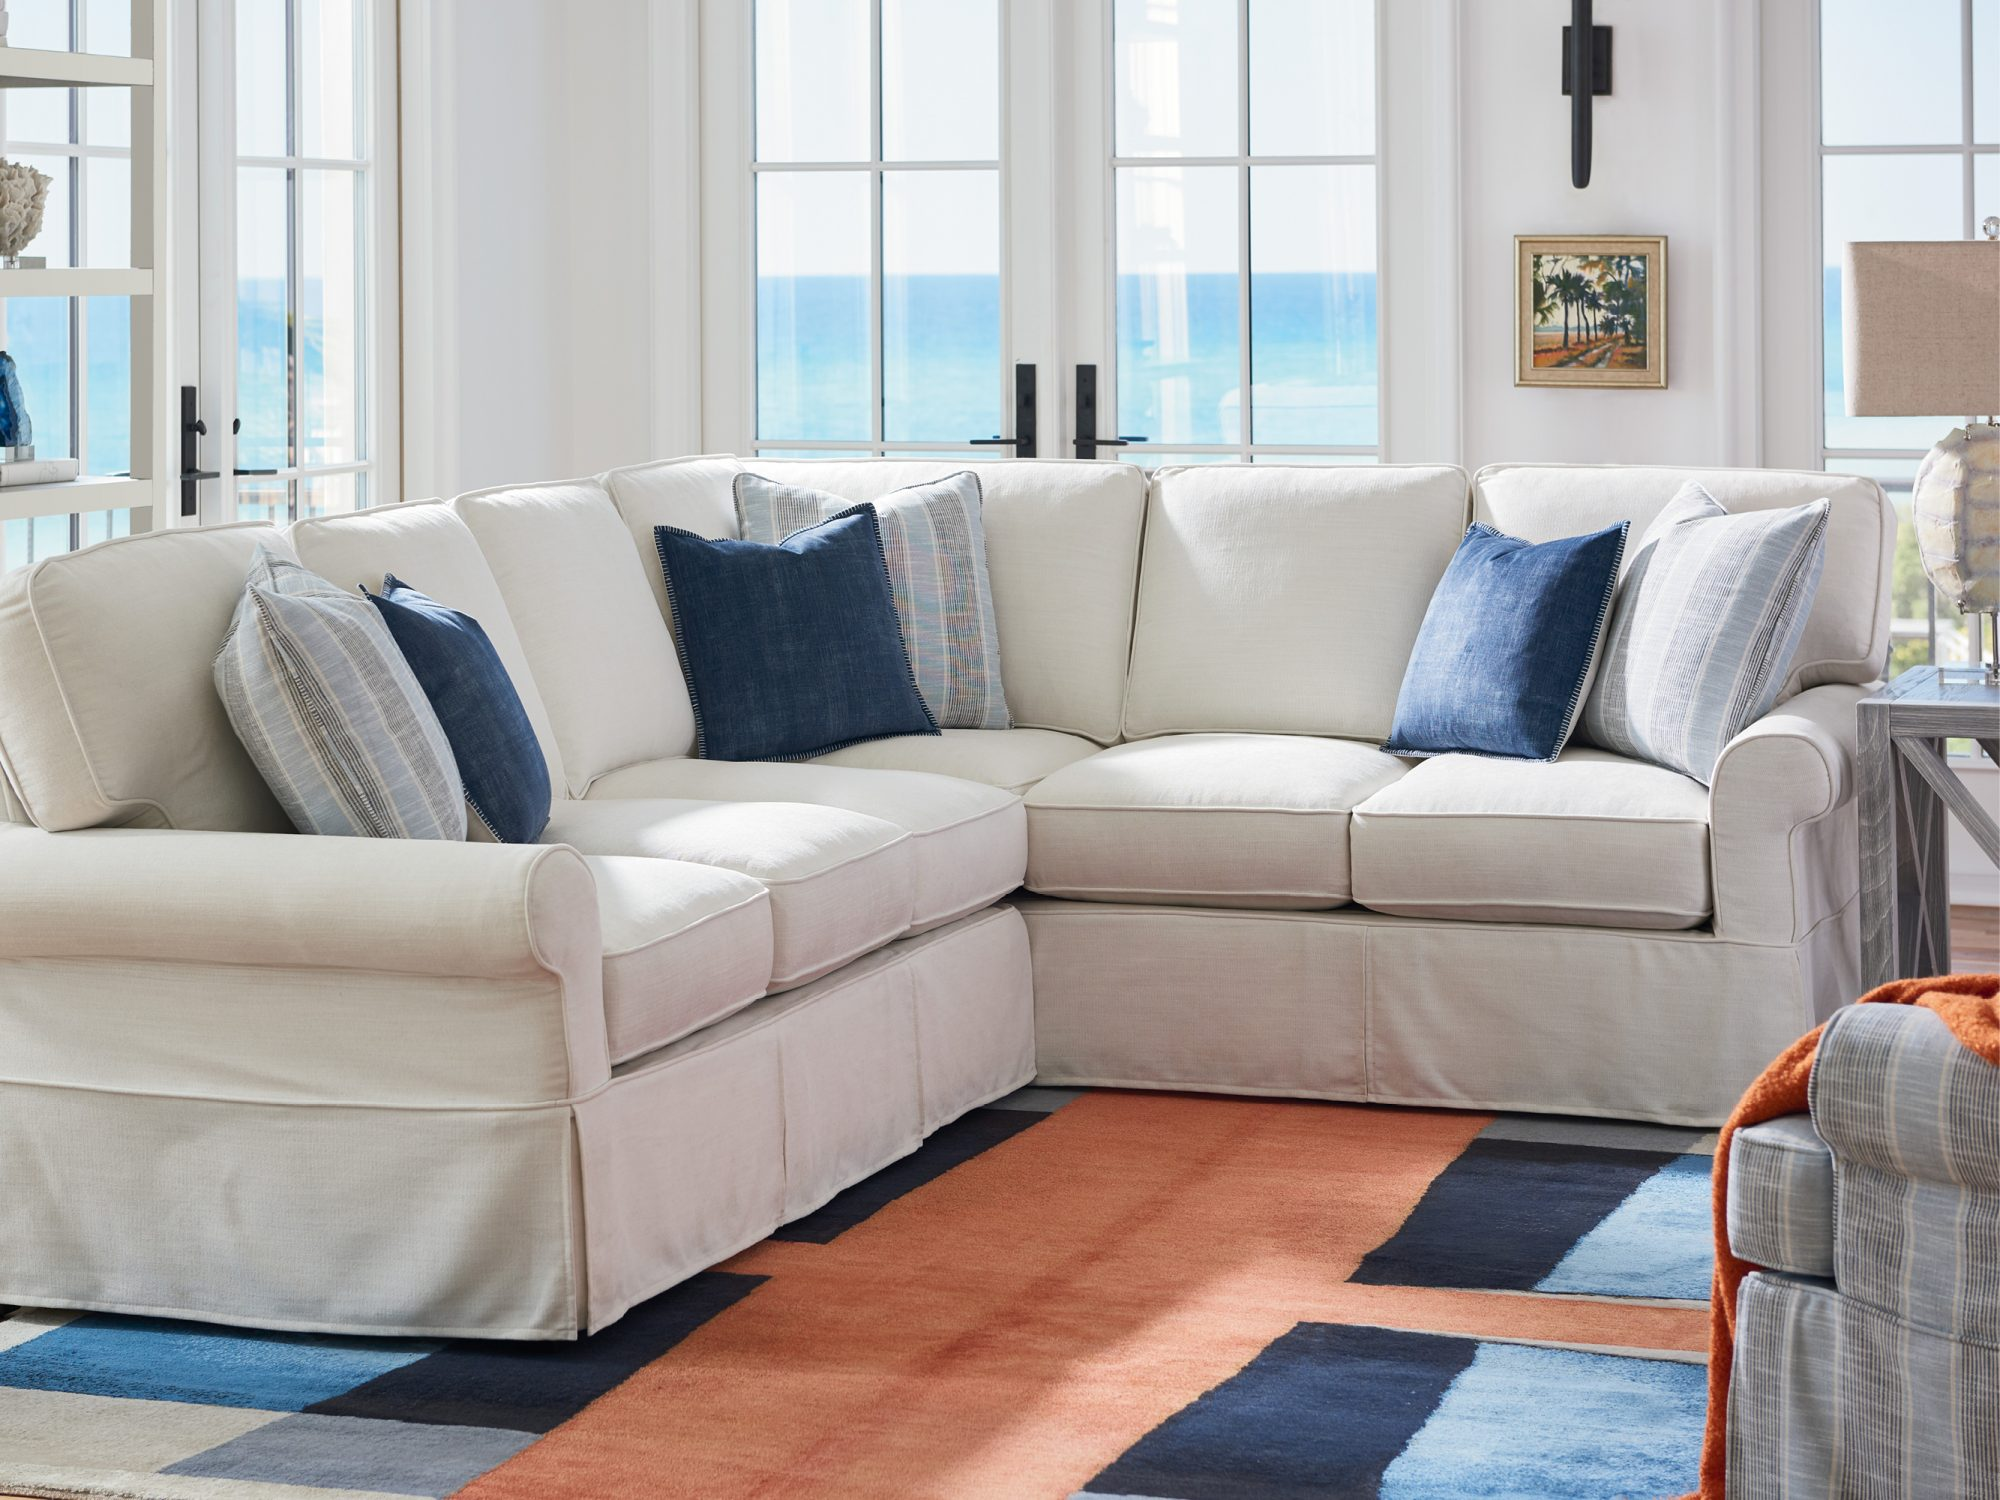 Sectional Sofa from the Coastal Living Furniture Collection